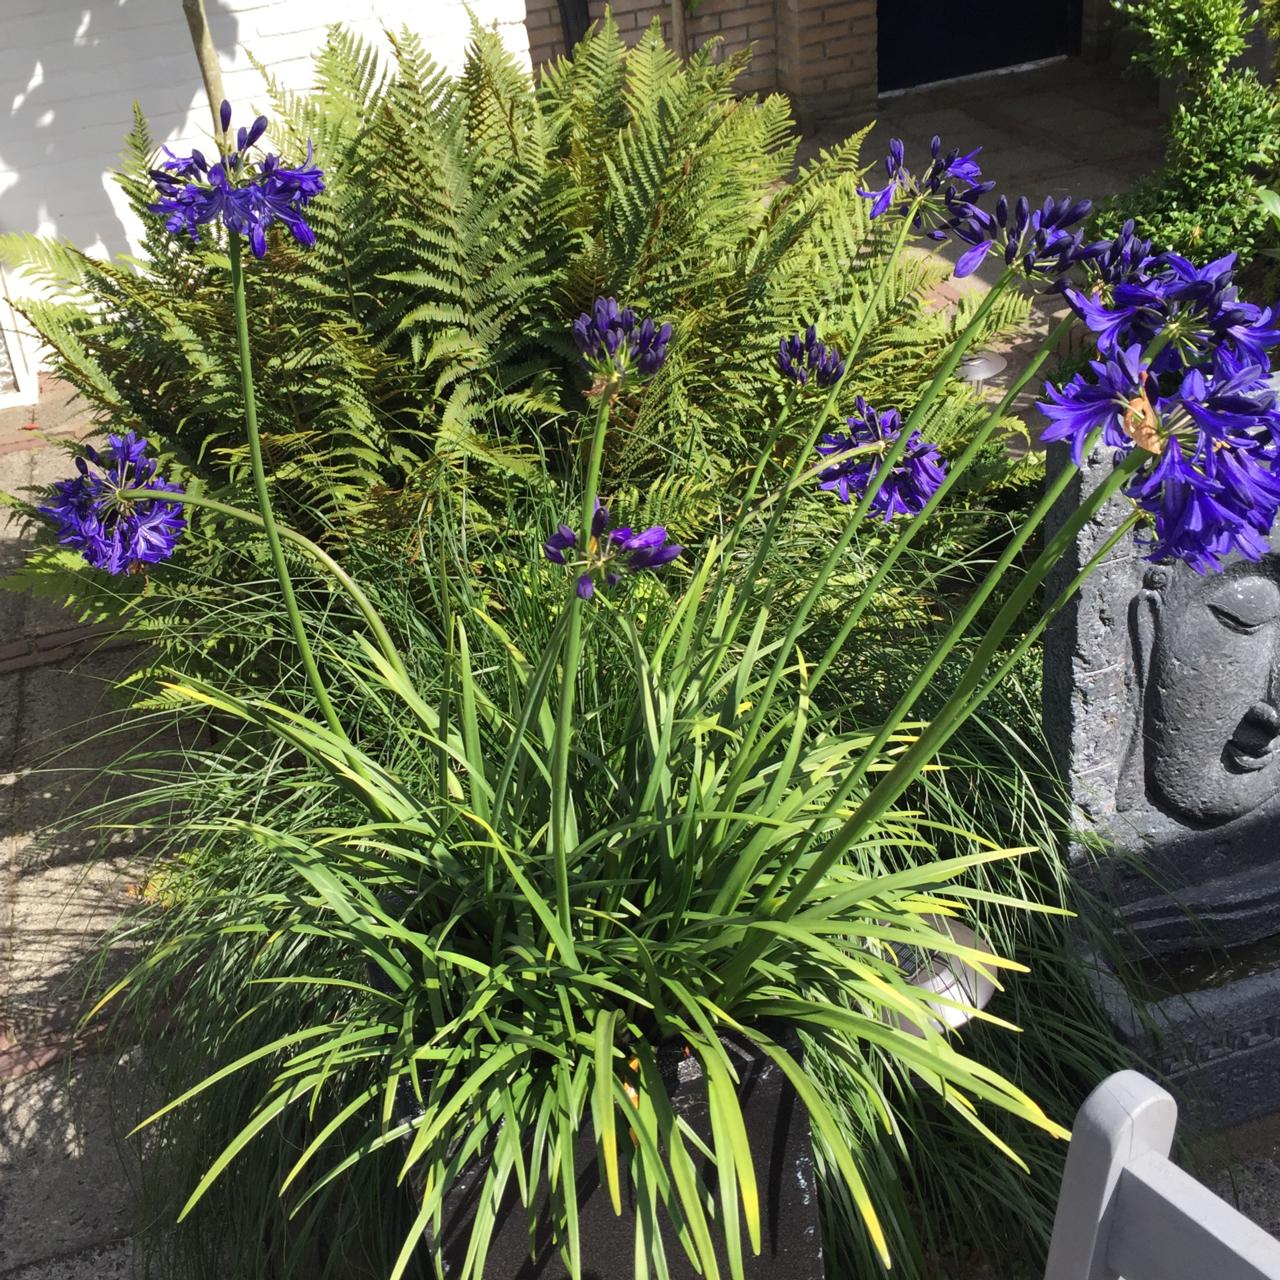 Agapanthus 'Northern Star' plant